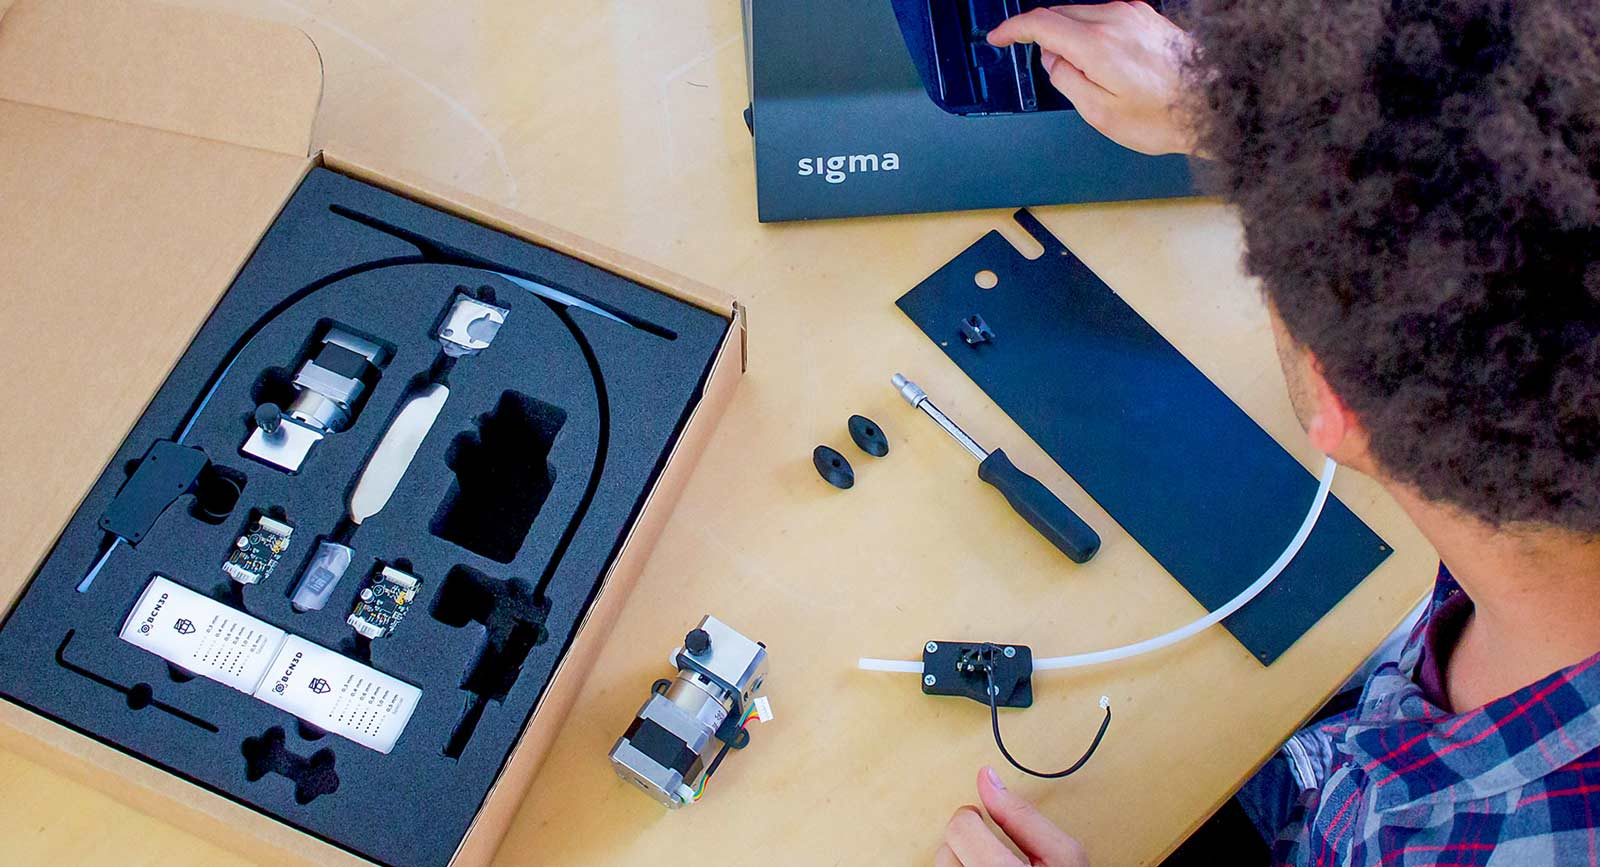 bcn3d-technologies-kit-upgrade-sigma-R19-02